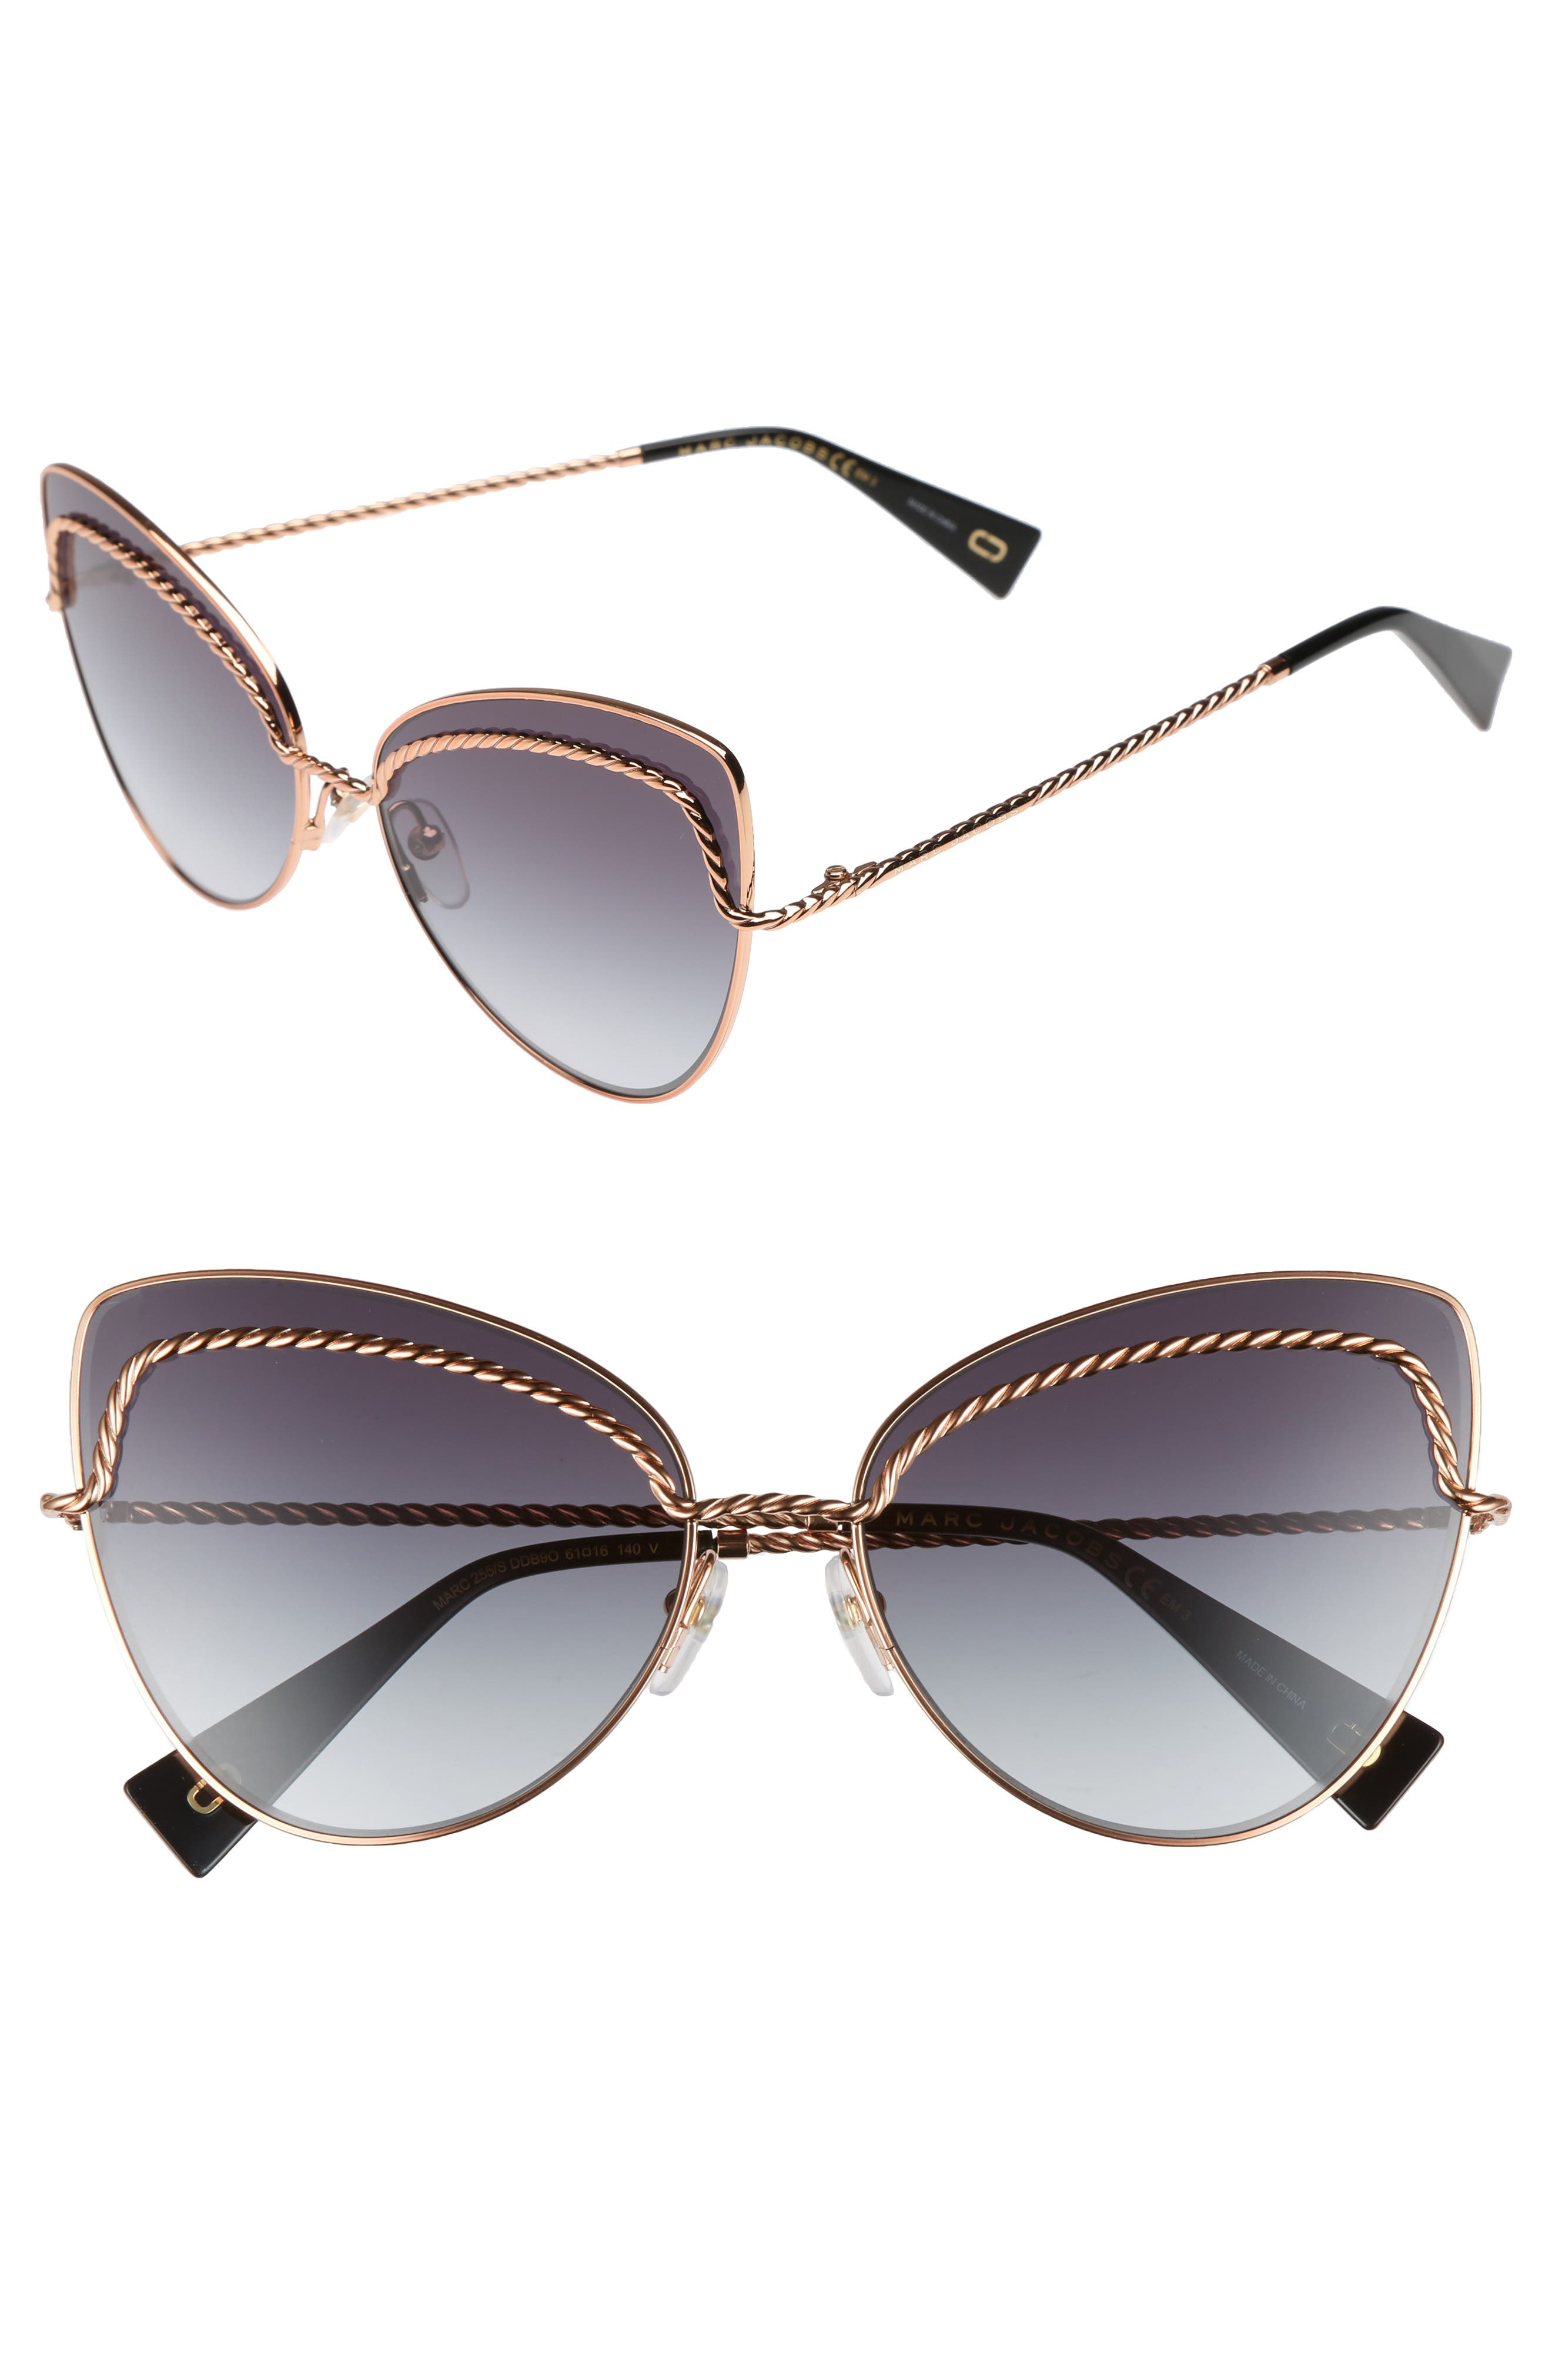 61mm Butterfly Sunglasses,                             Main thumbnail 1, color,                             710